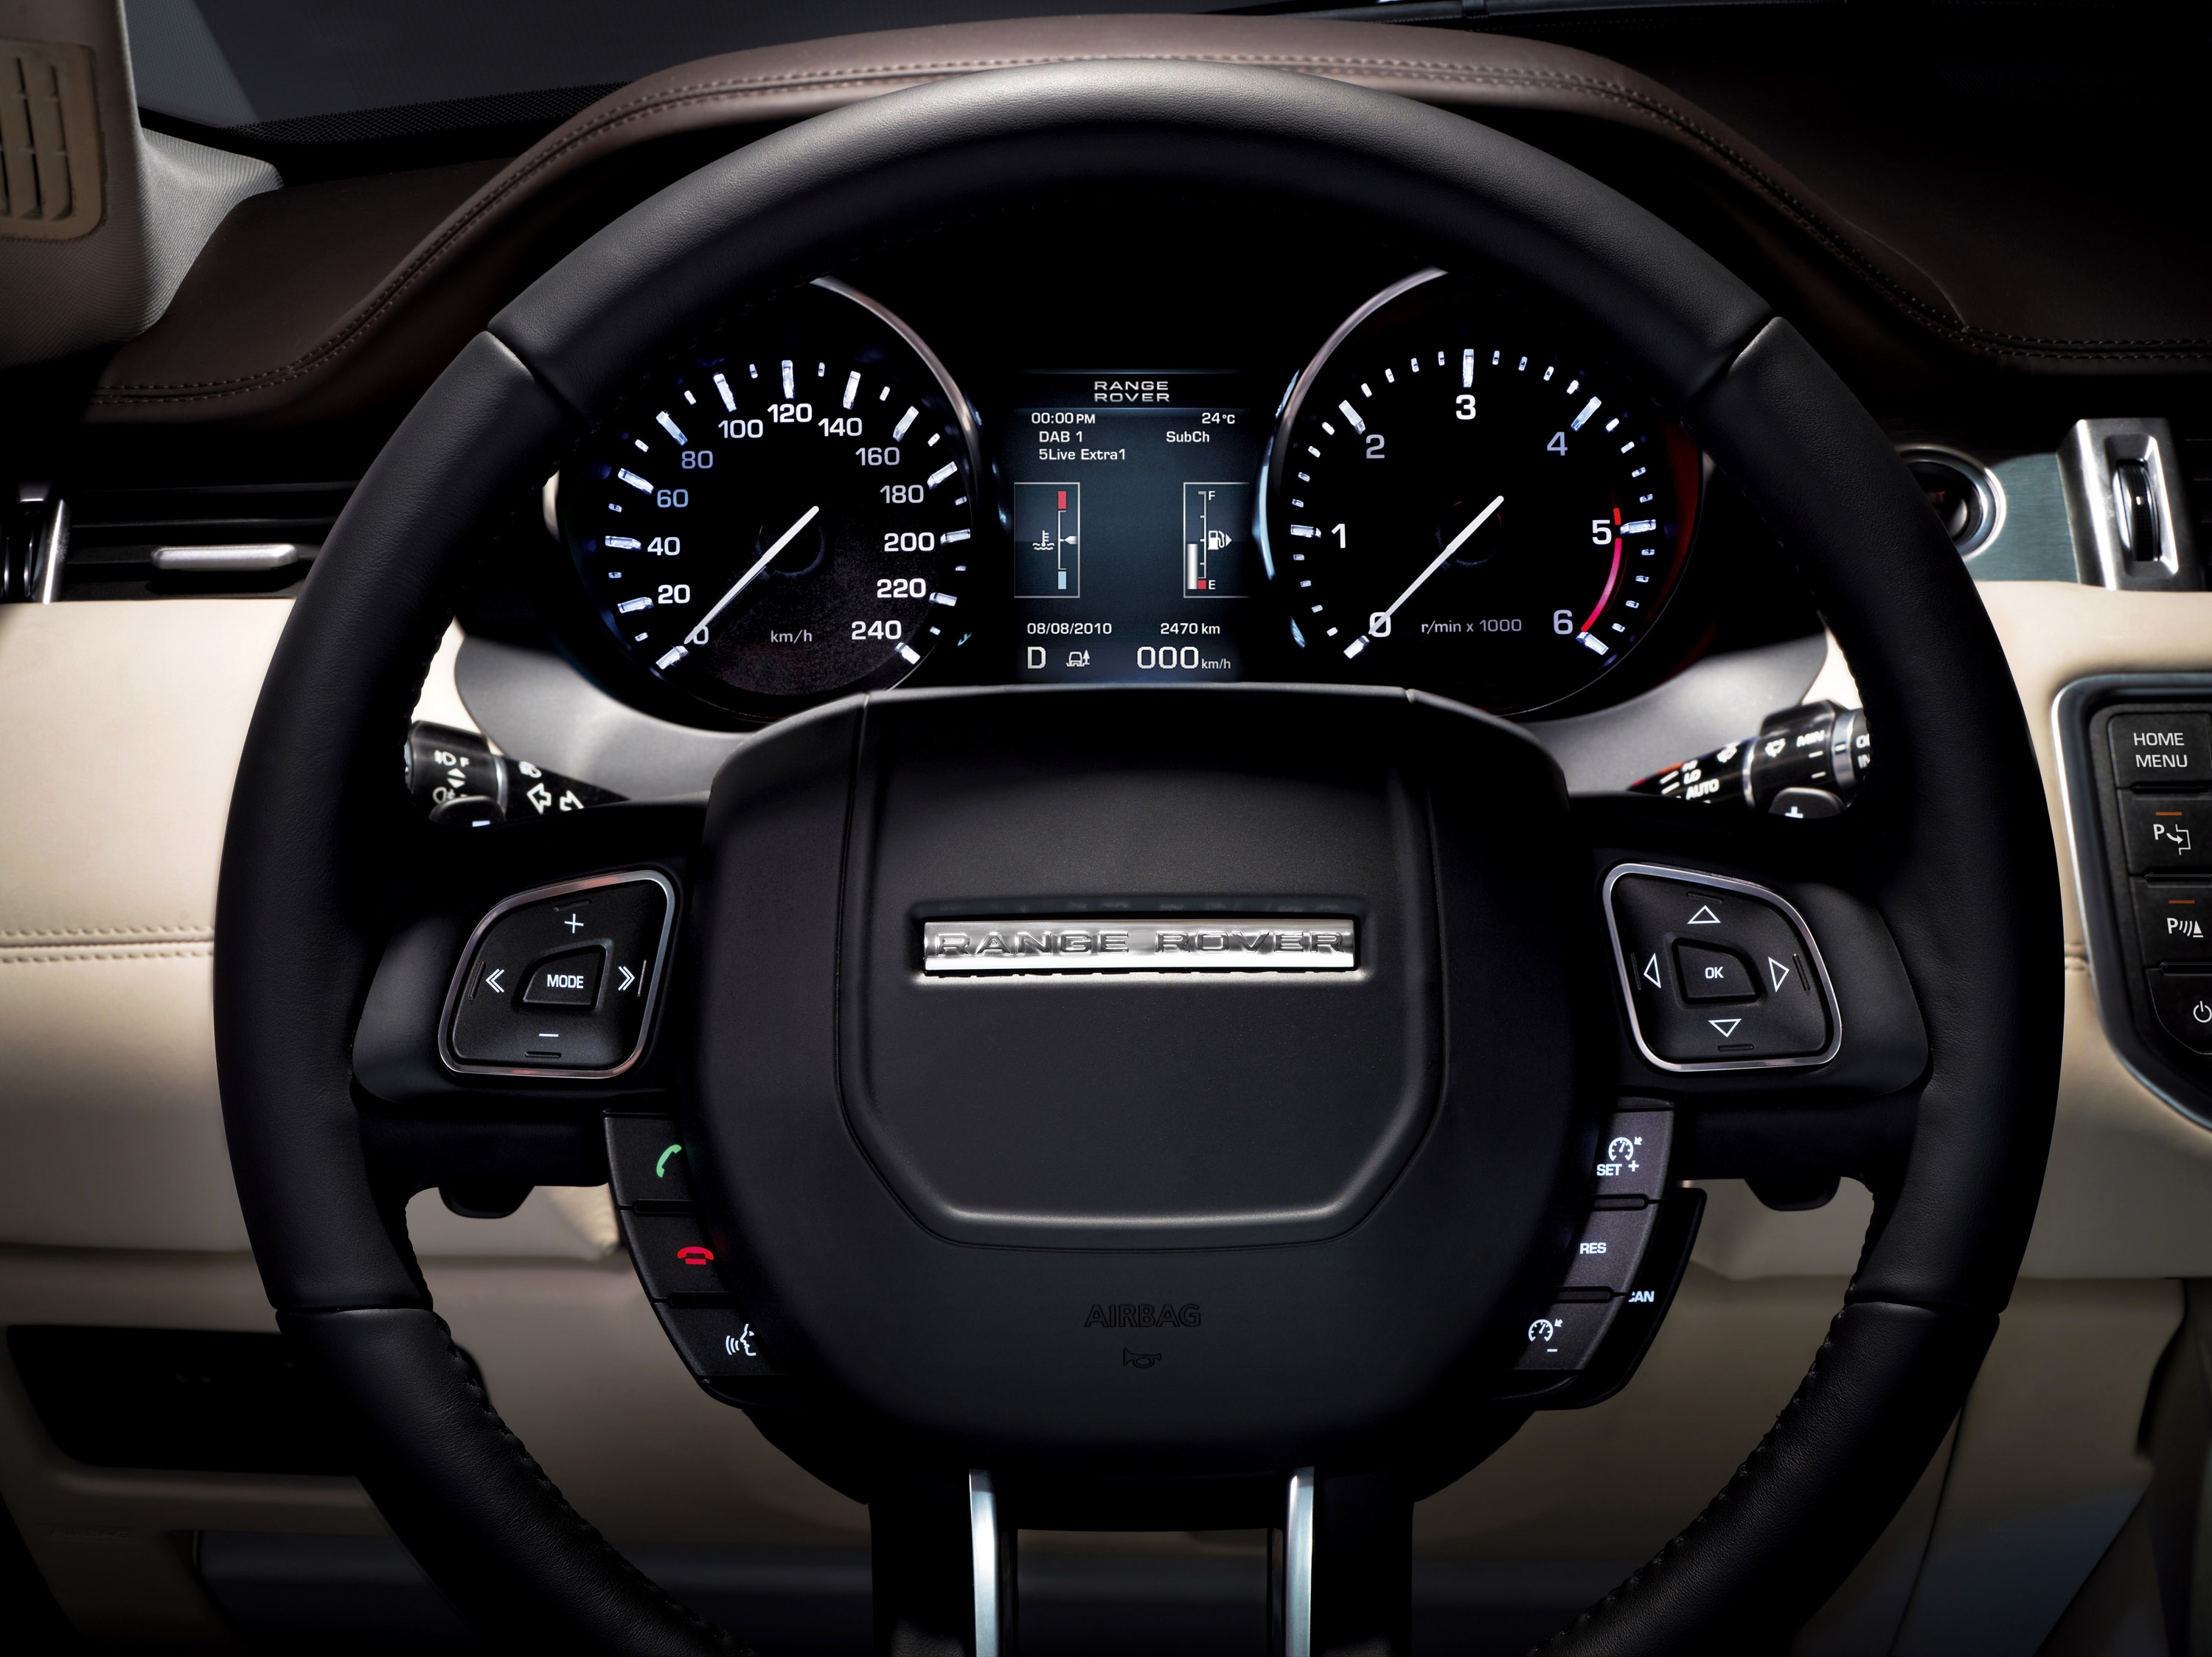 2010 mondial de l auto de paris range rover evoque for Interieur evoque